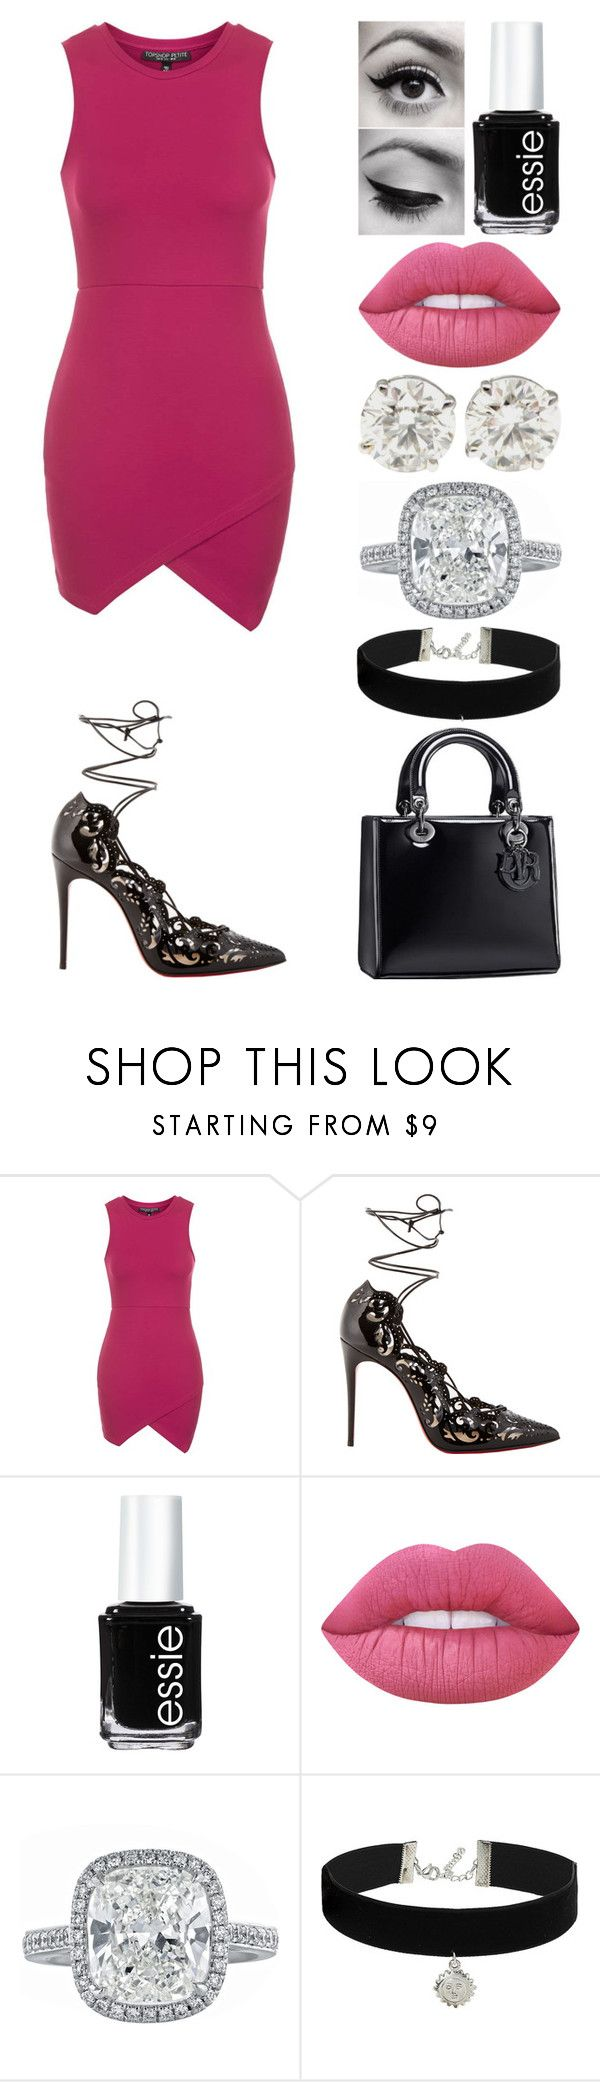 """""""sledgehammer."""" by emmmalaw ❤ liked on Polyvore featuring Topshop, Christian Louboutin, Essie and Lime Crime"""